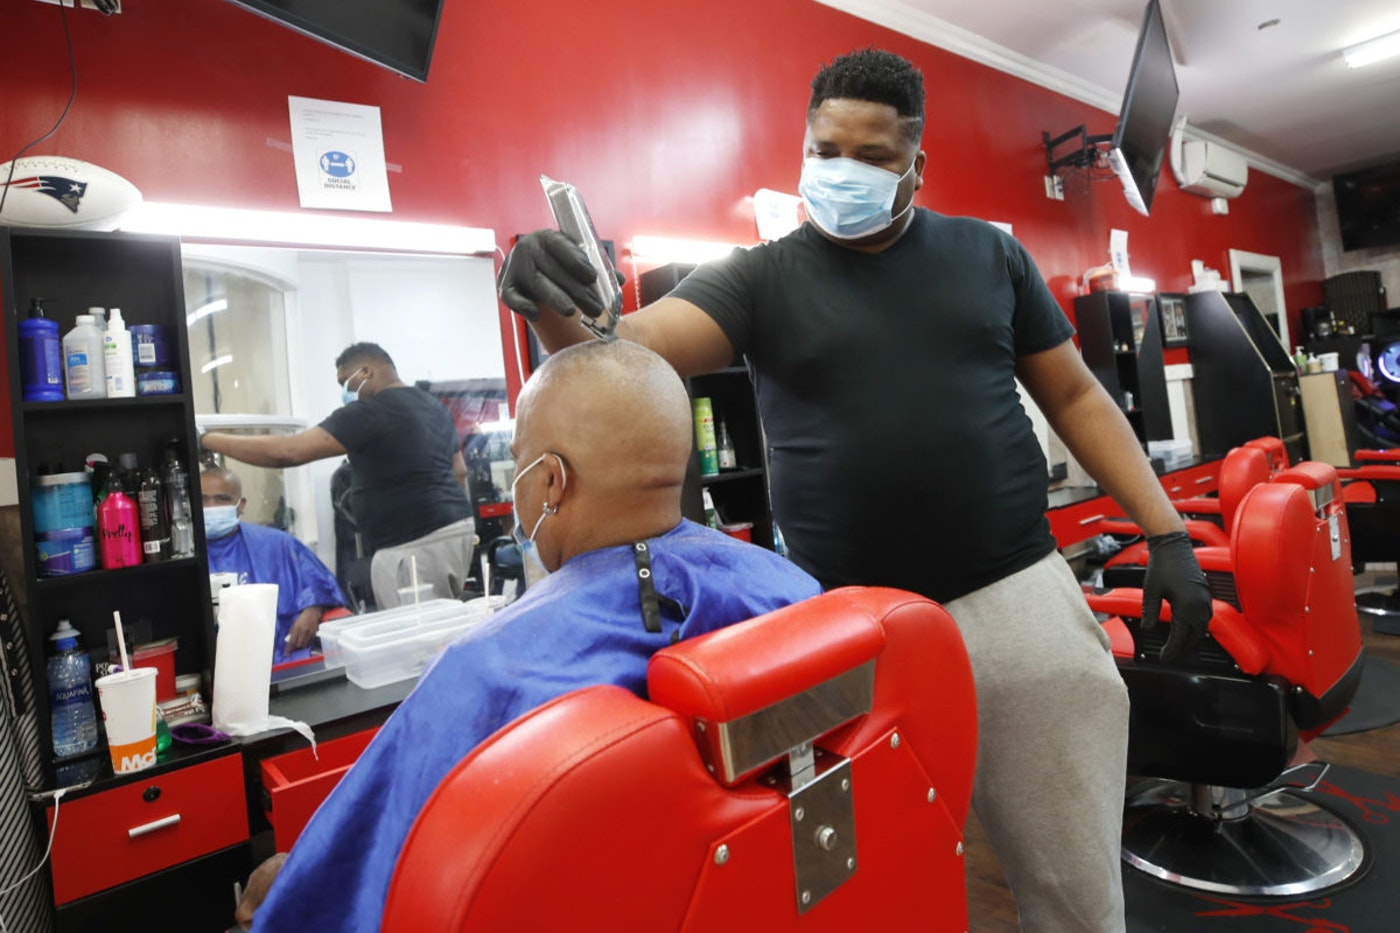 Wilkin Soto works on a customer at the Castillo Barbershop, Friday, June 5, 2020, in Lawrence, Mass. The U.S. unemployment rate fell unexpectedly in May to 13.3% — still on par with what the nation witnessed during the Great Depression — as states loosened their coronavirus lockdowns and businesses began recalling workers. (AP Photo/Elise Amendola)